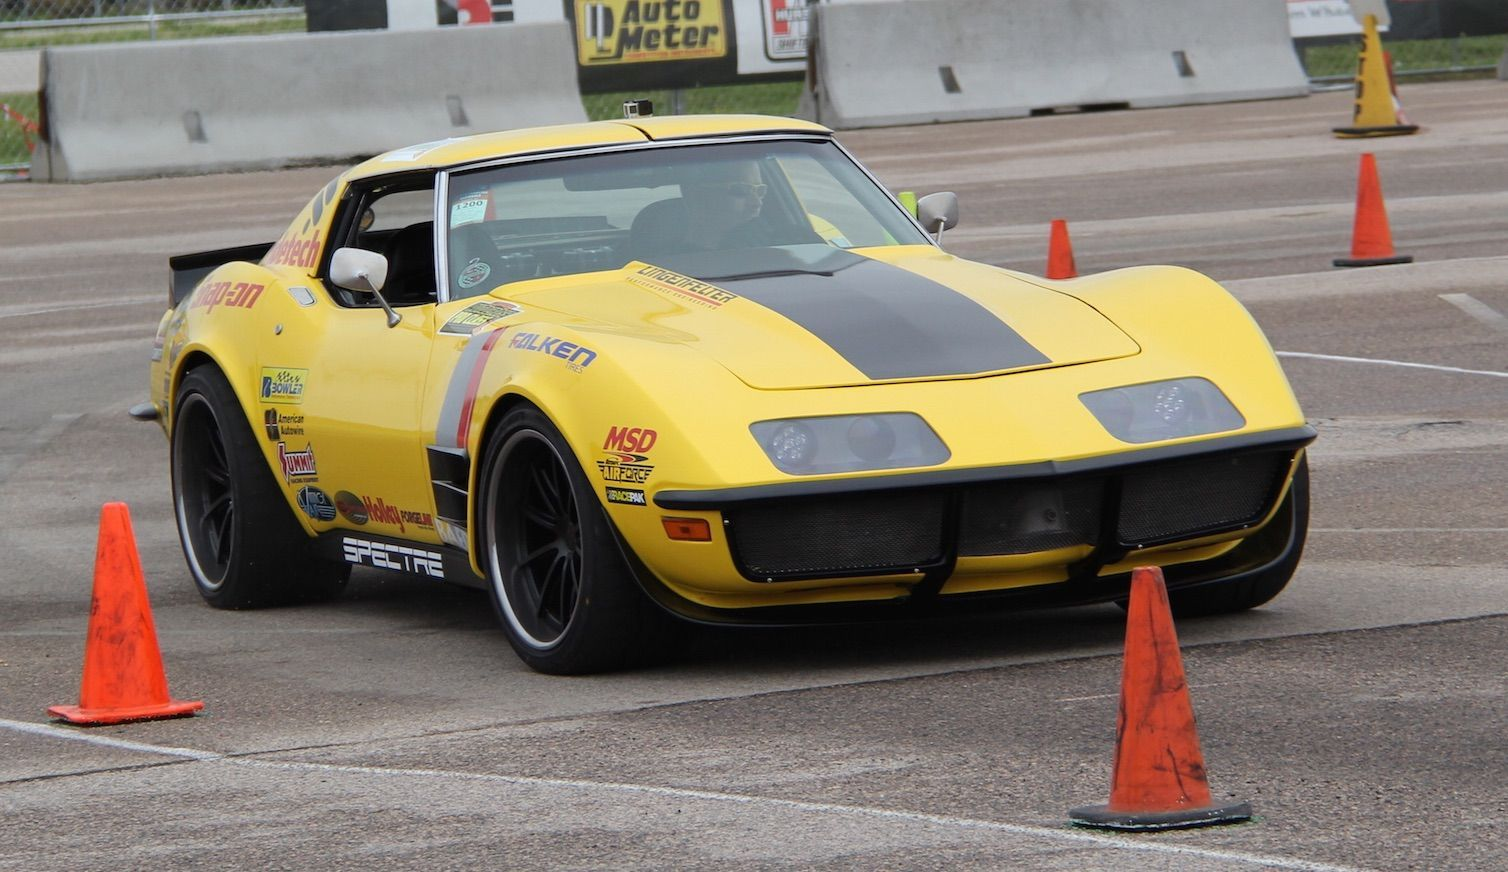 1972 Chevrolet Corvette Stingray | 48 Hour Corvette at Goodguys Des Moines on Forgeline GT3C Wheels